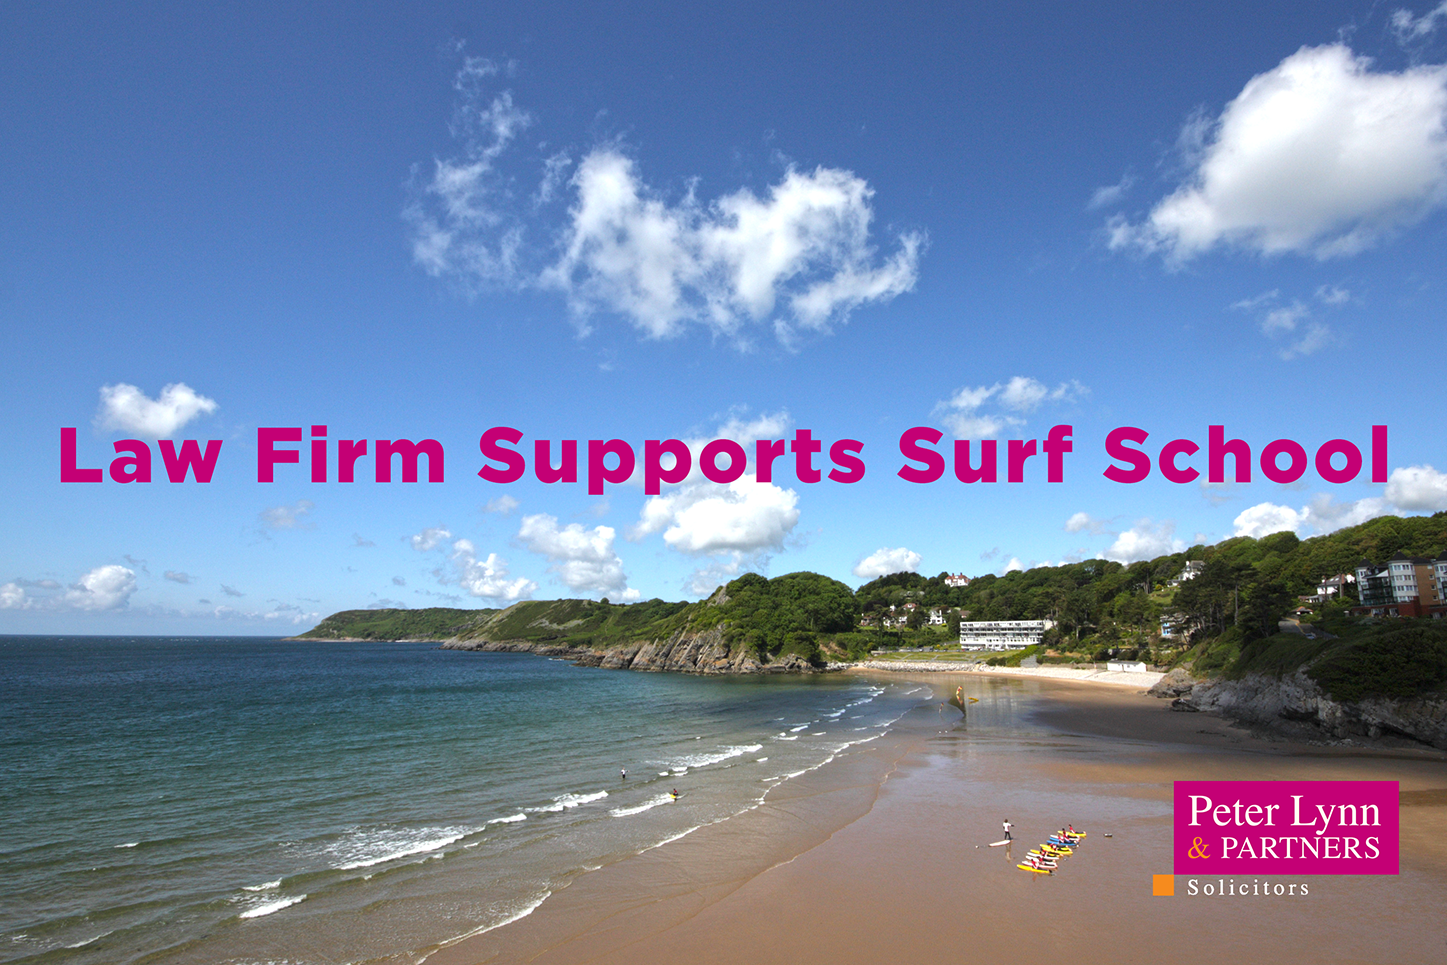 Law Firm Supports Surf School